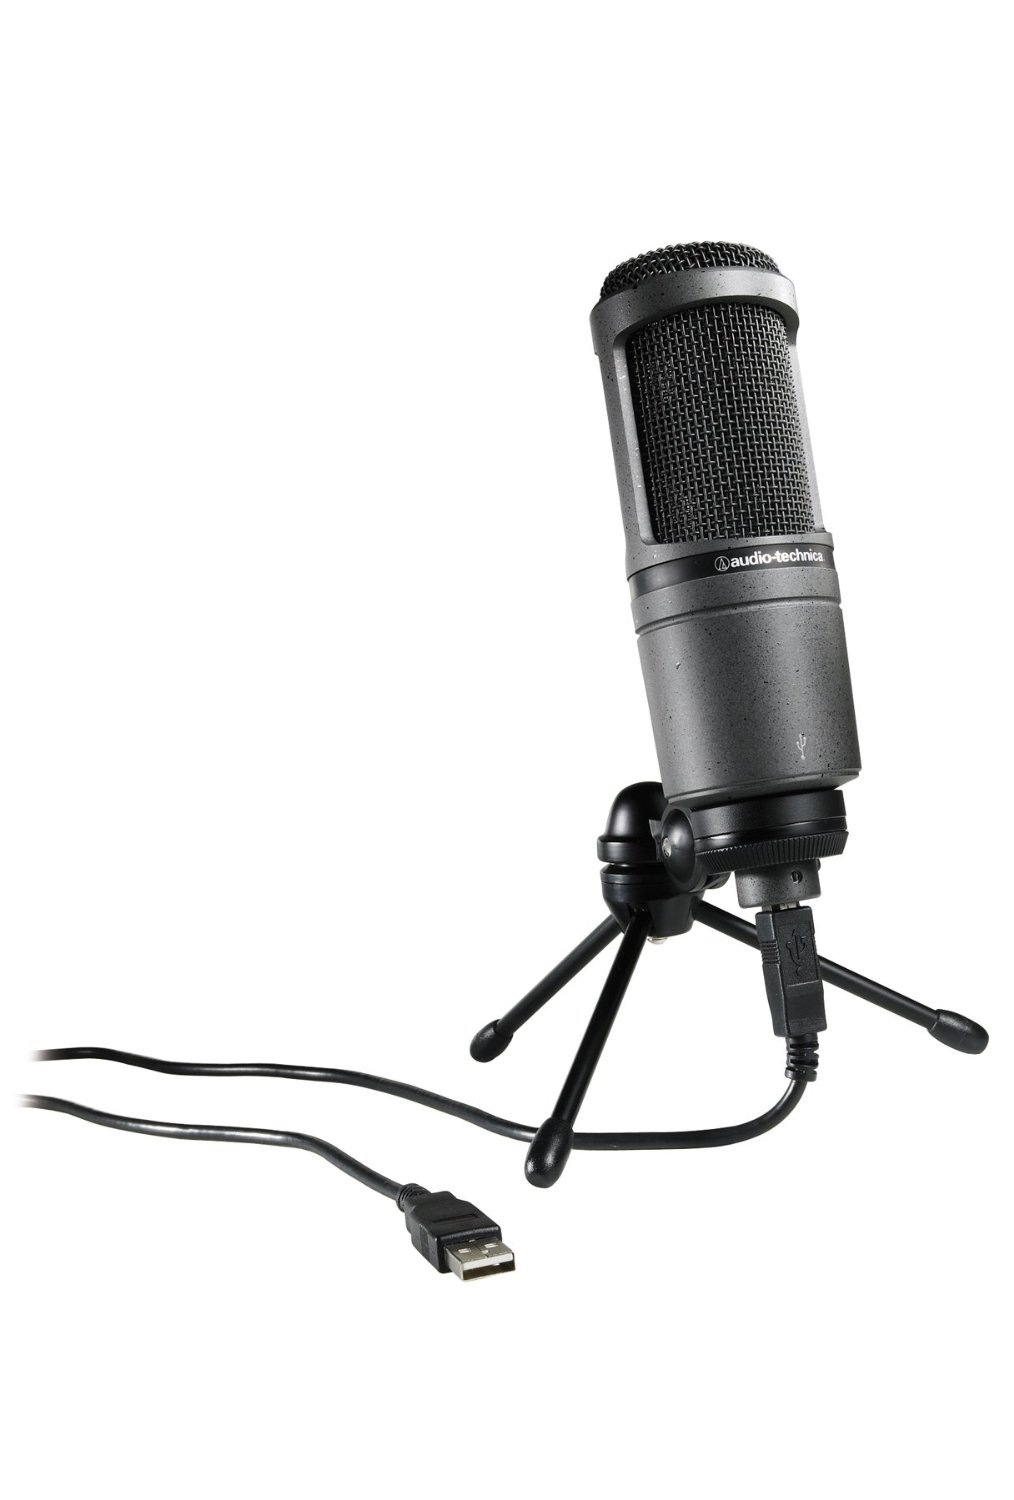 Audio-Technica's Condenser Microphone A Stealth Winner